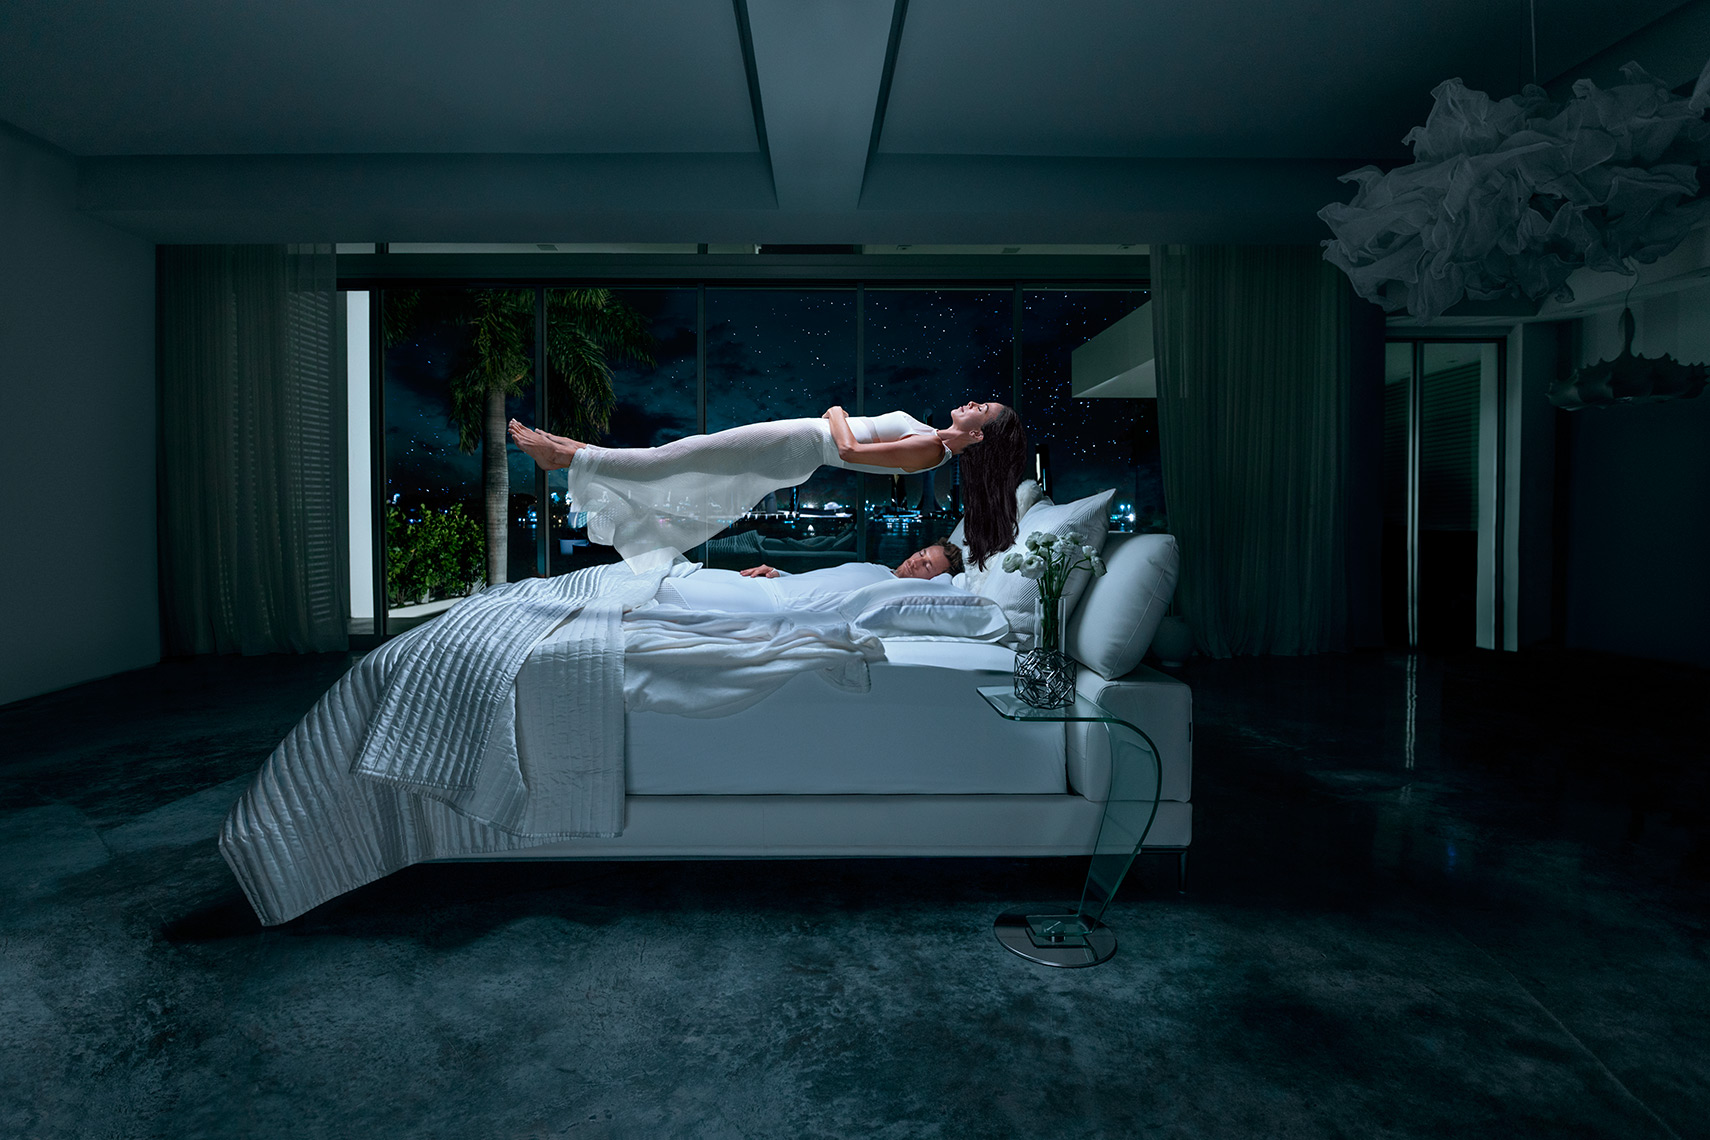 shot12_Intellibed_6439-1.jpg